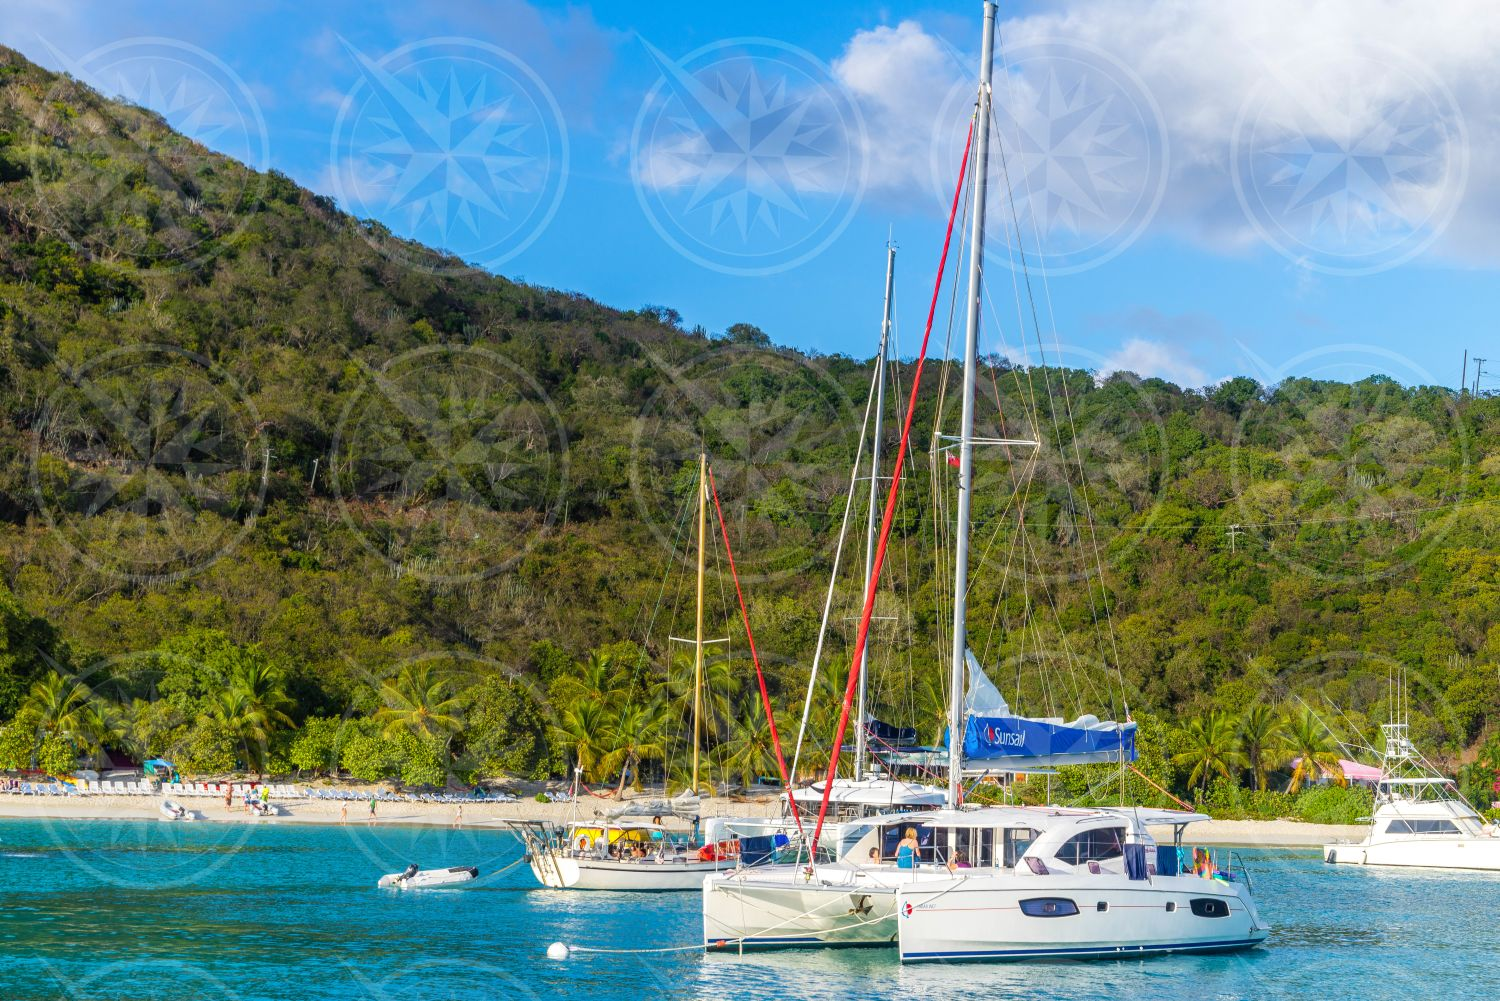 Sailboats in anchorage of White Bay, Jost Van Dyke, British Virgin Islands